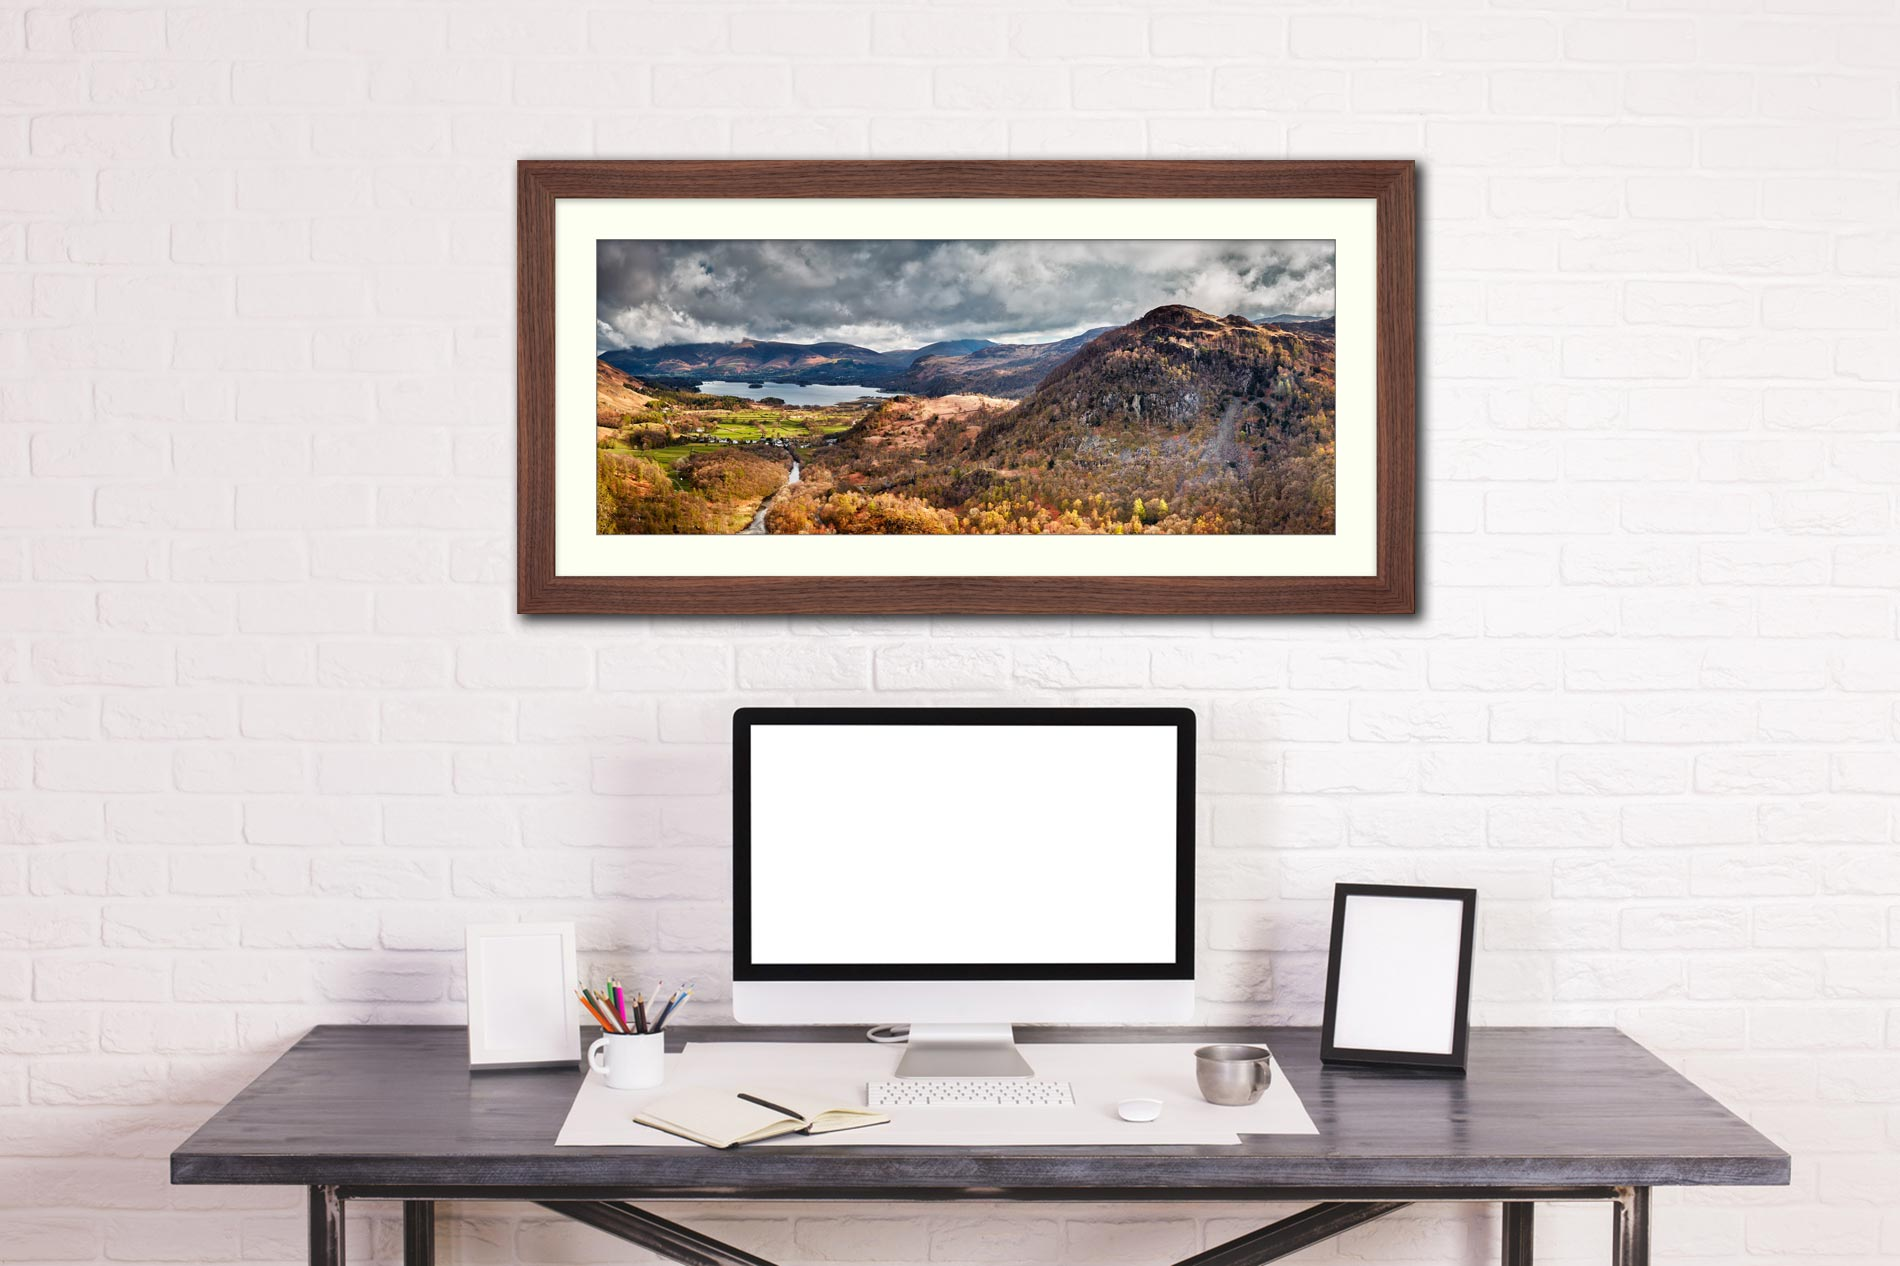 Kings How and Derwent Water - Framed Print with Mount on Wall